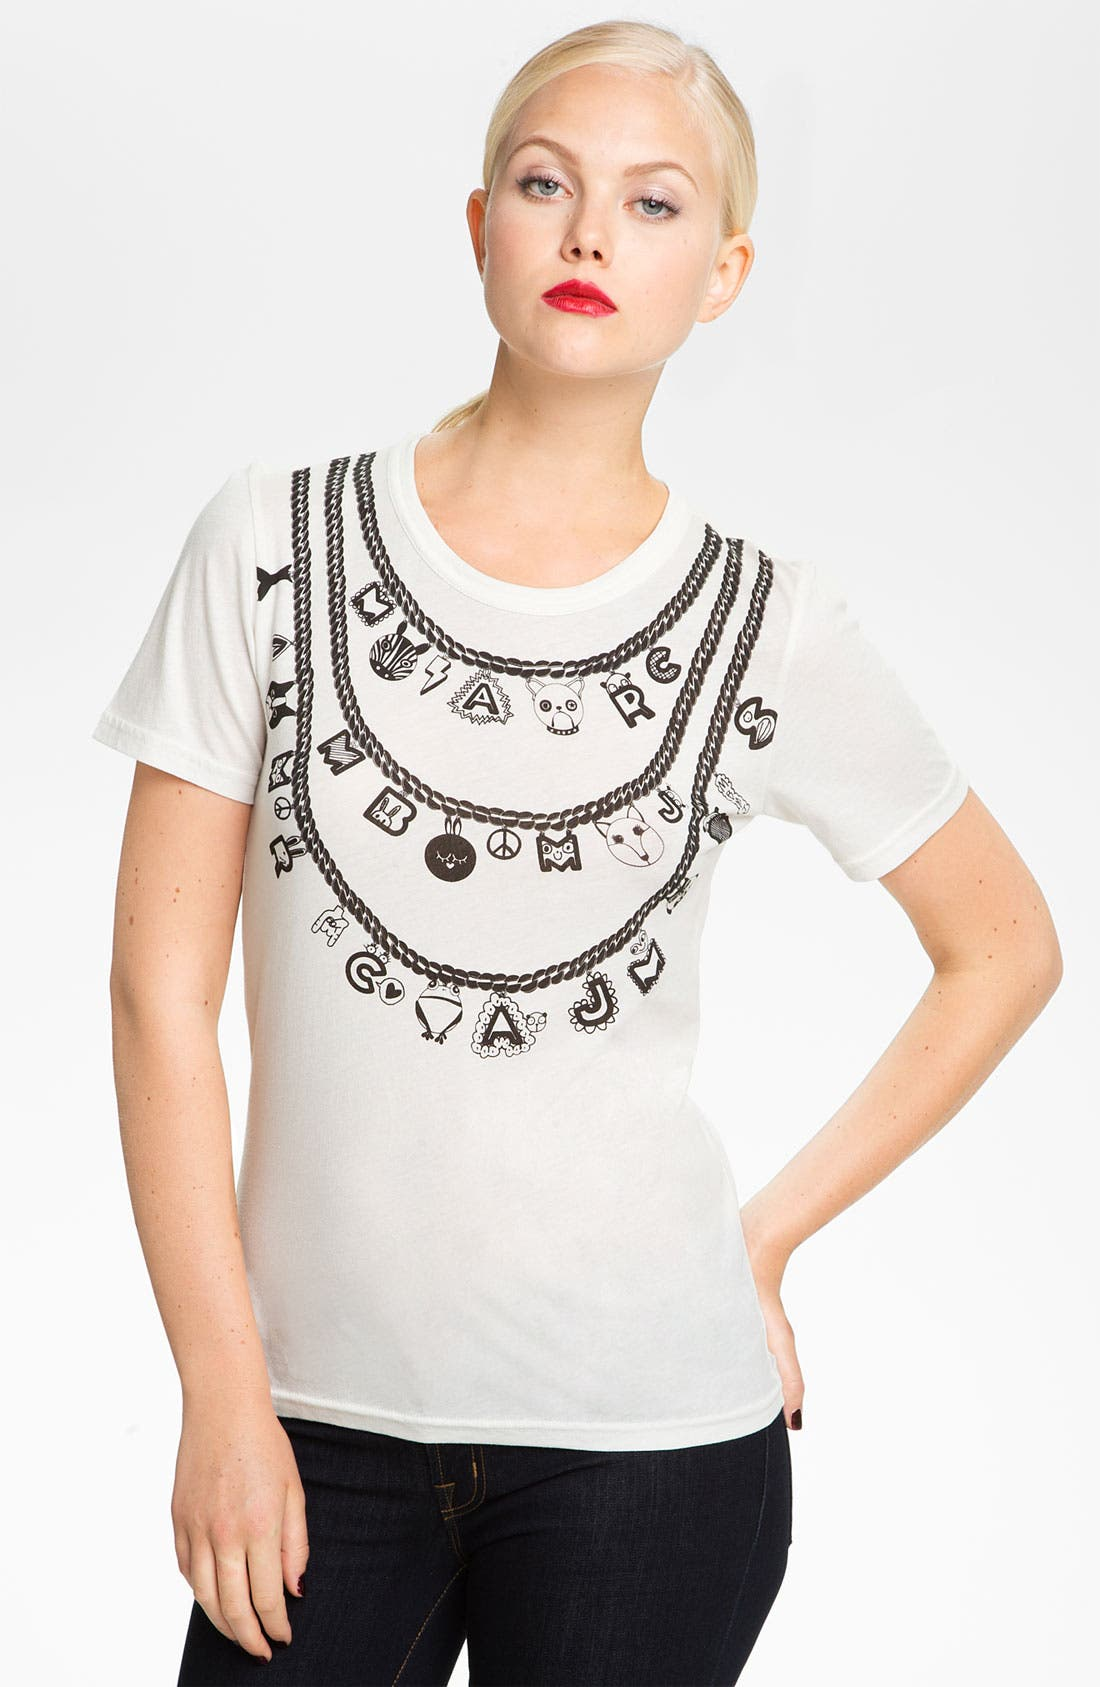 Alternate Image 1 Selected - MARC BY MARC JACOBS 'Dreamy' Necklace Tee